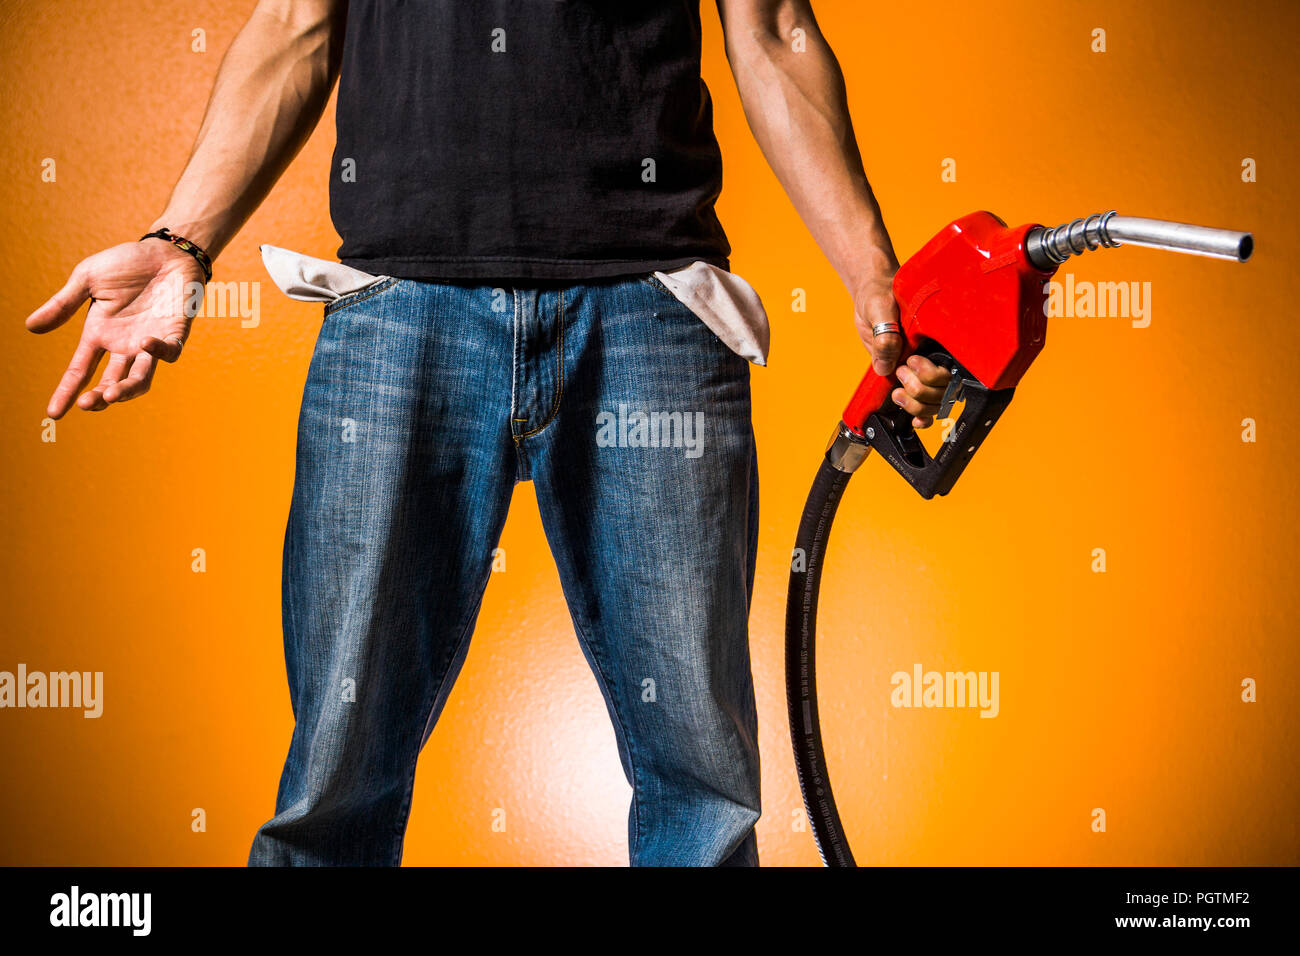 Empty pockets and gasoline pump nozzle. Concept is out of money for gas or gas is too expensive. - Stock Image